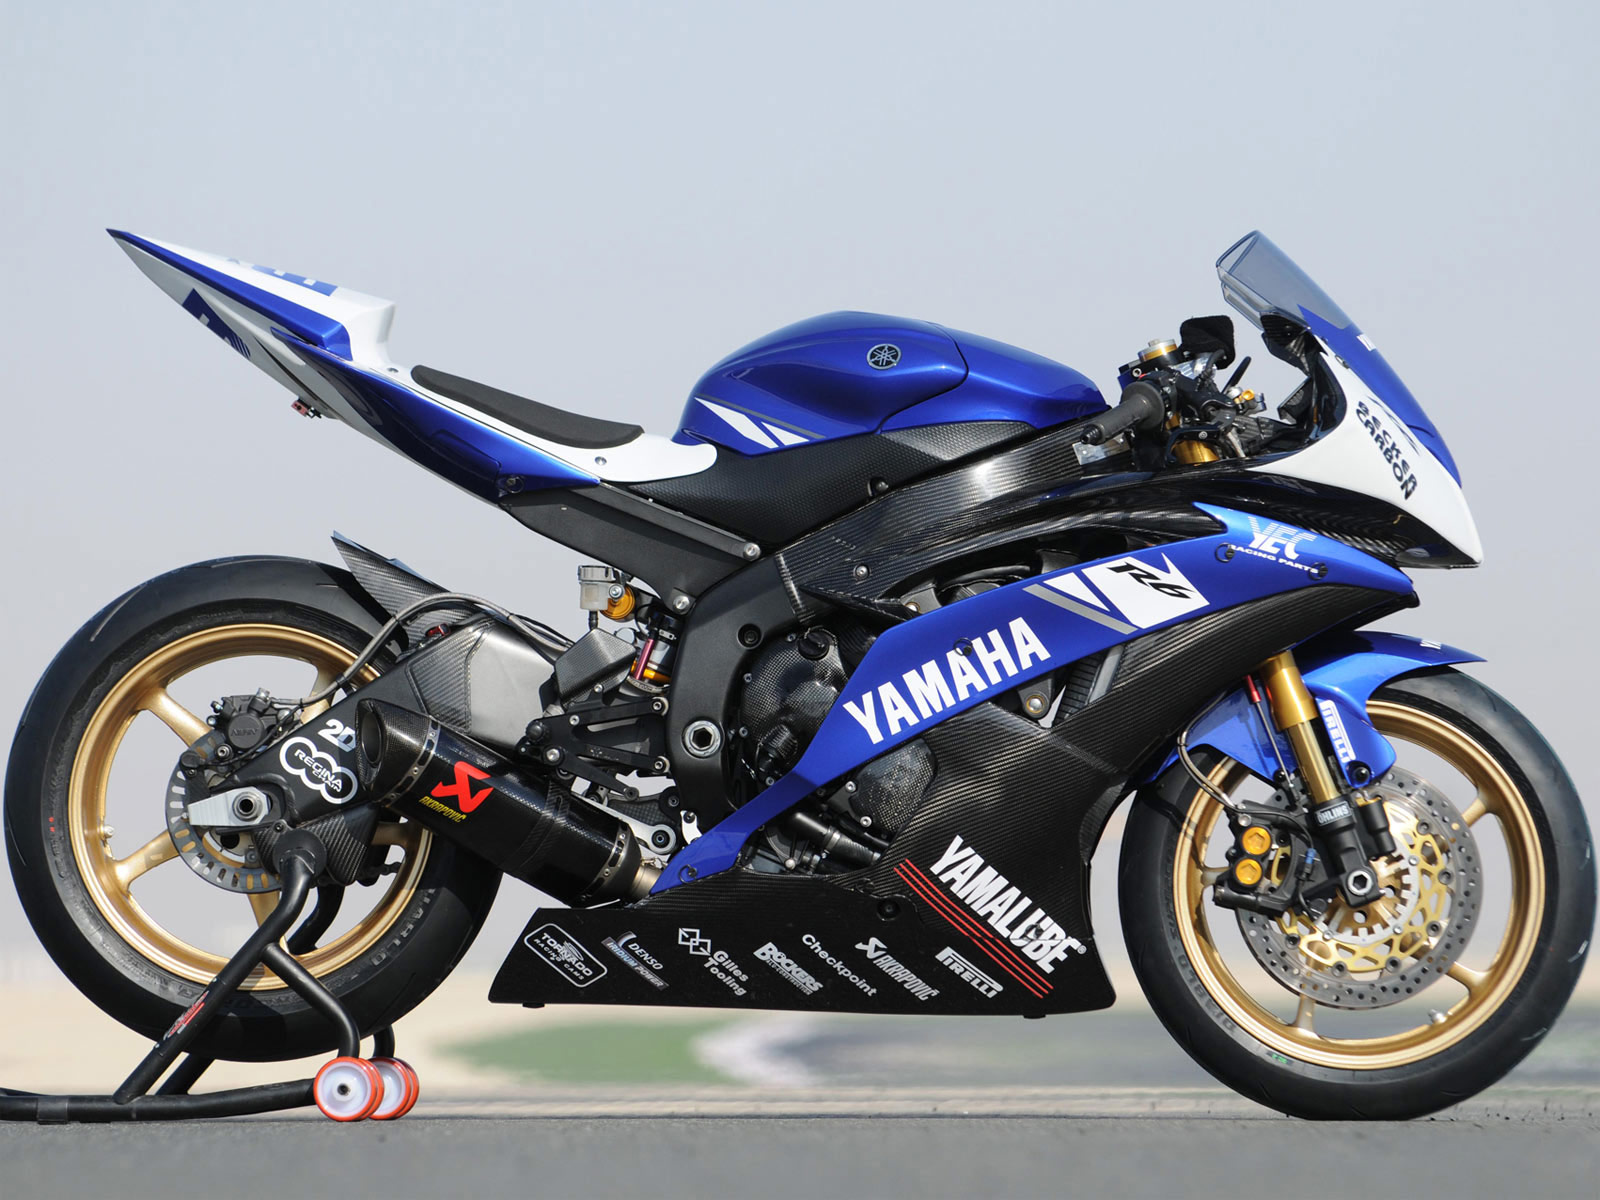 YAMAHA R1 - Review and photos